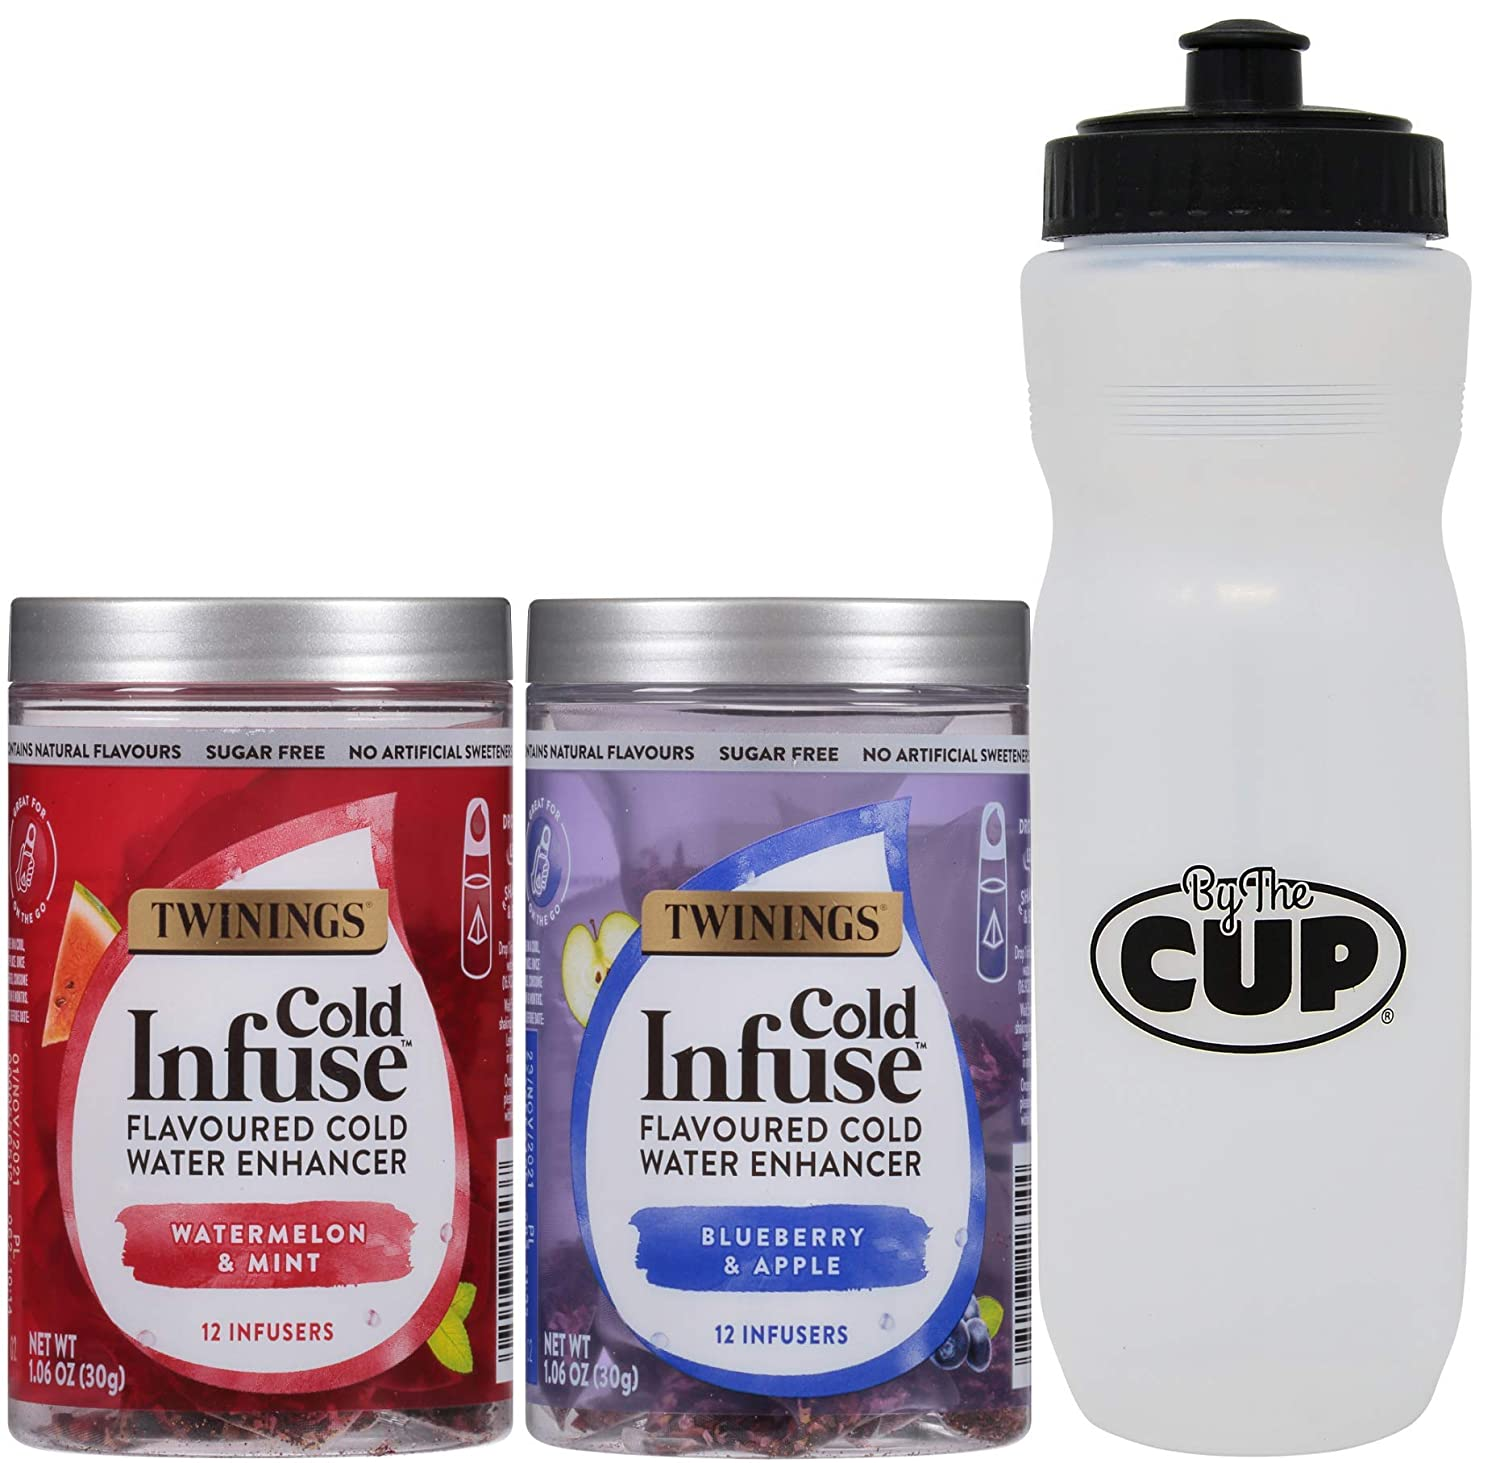 Twinings Cold Infuse Flavoured Cold Water Enhancer Variety, Watermelon & Mint and Blueberry & Apple with By The Cup Sports Bottle